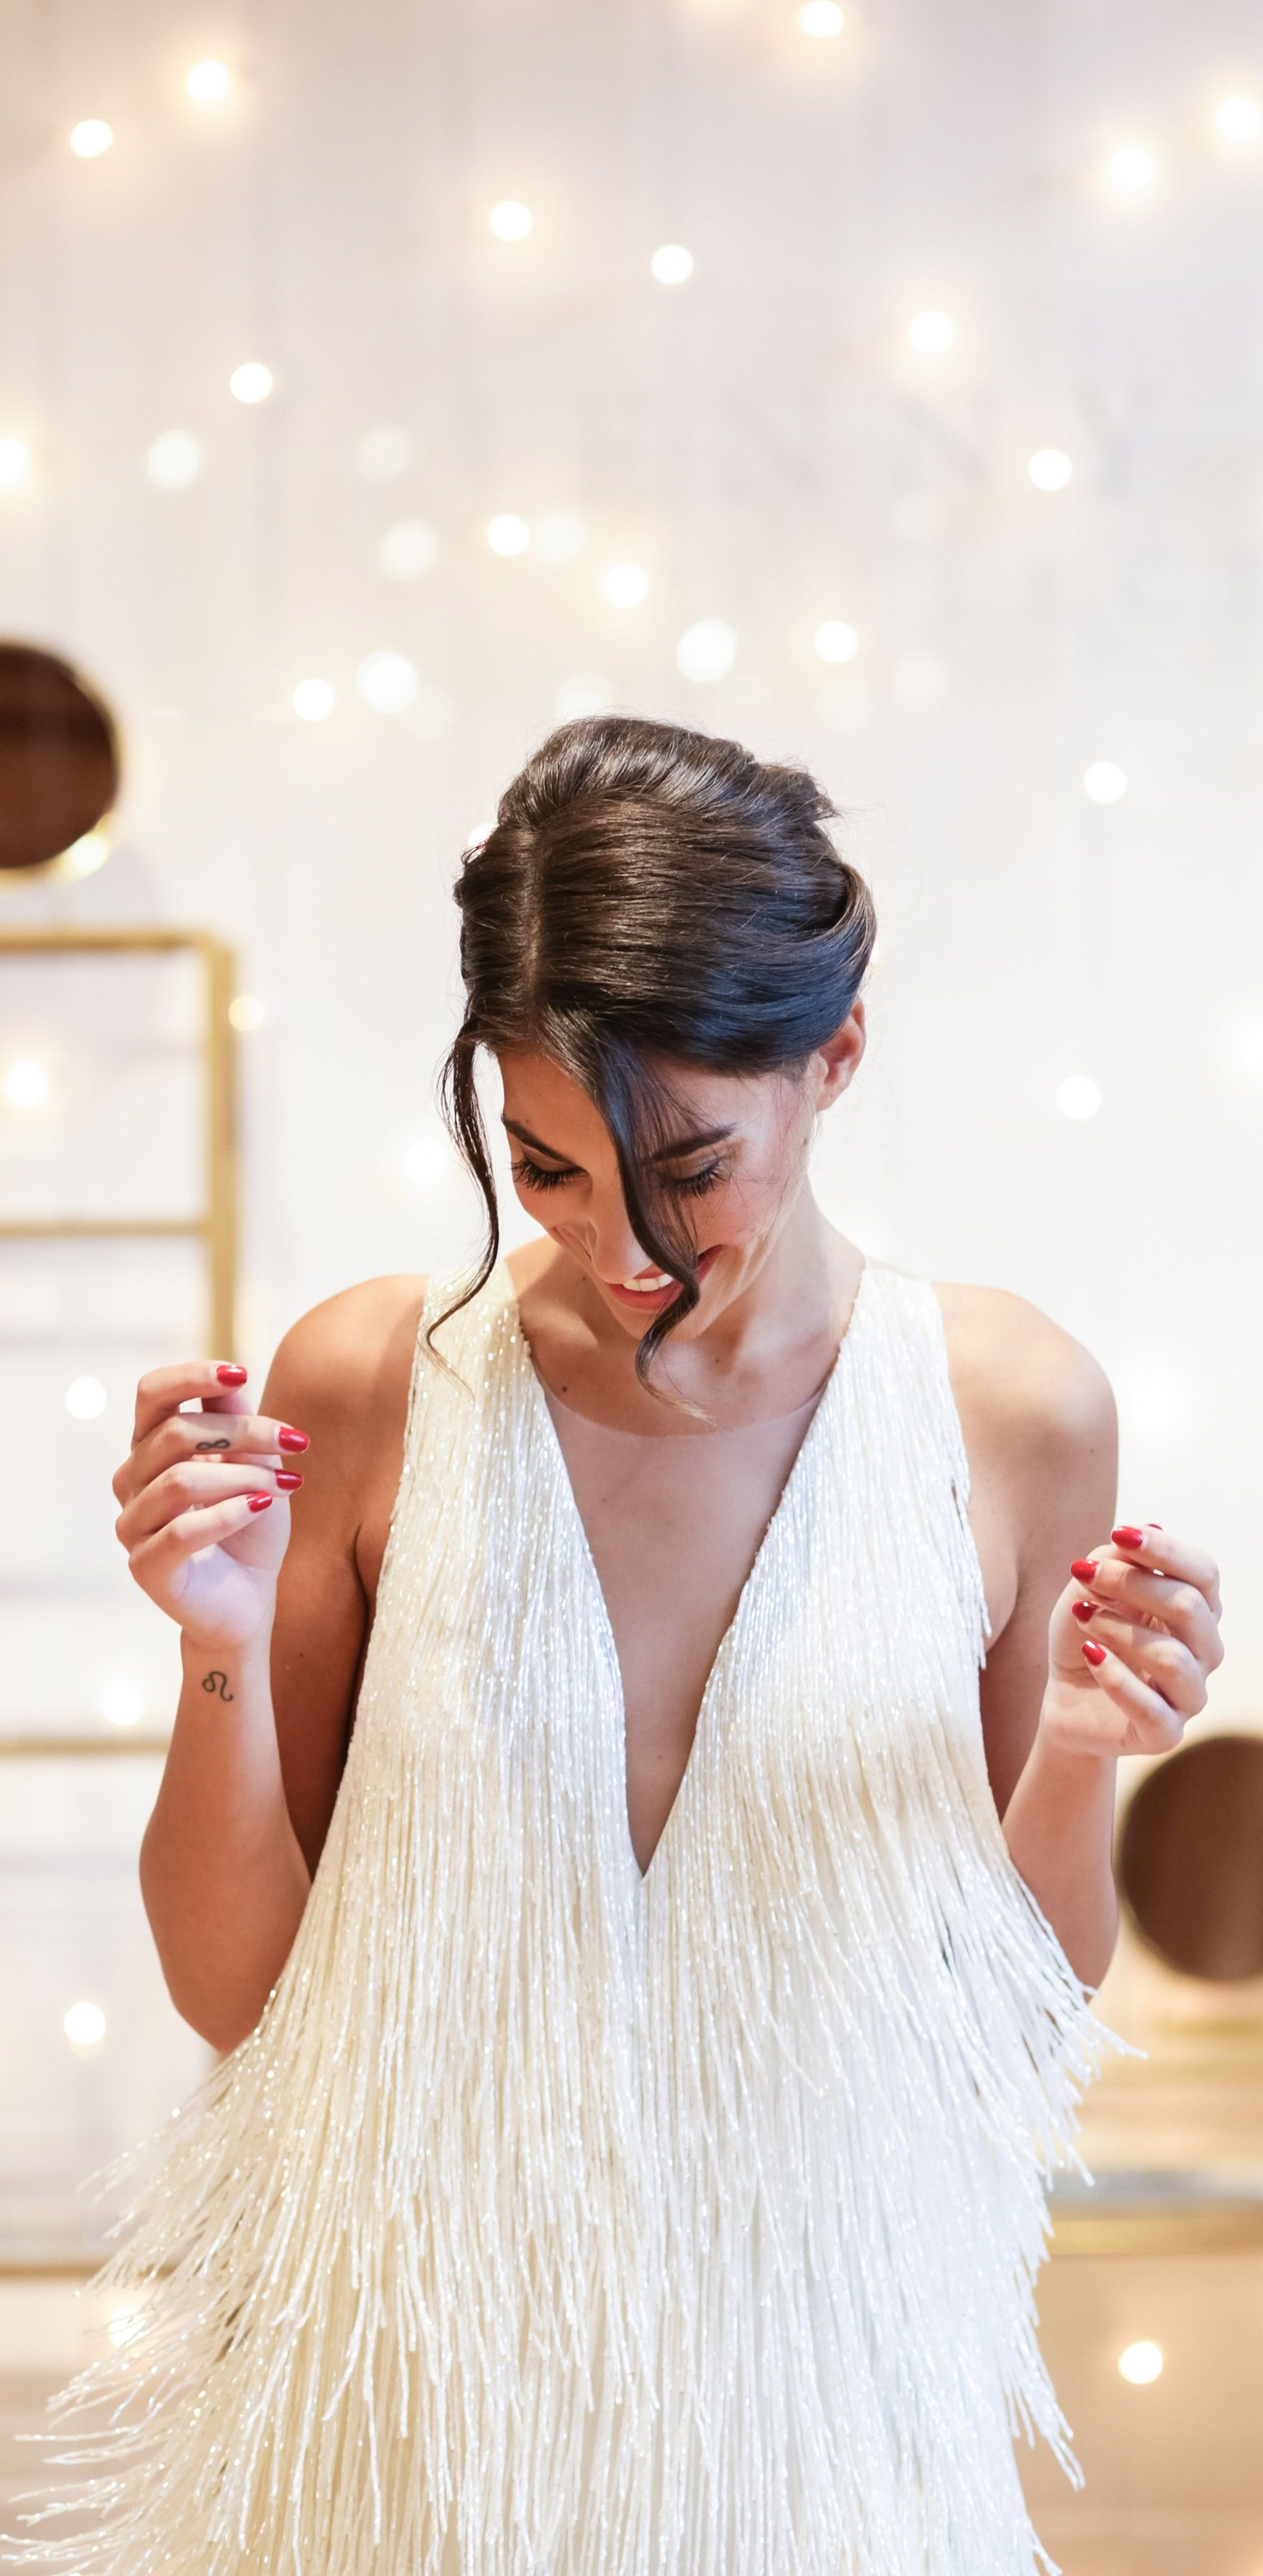 Sparkling Goddess Introducing The Etra By Jenny Yoo Featuring Delicate Beaded Fringe Th Rehearsal Dress Vintage Wedding Dress 1920s Rehearsal Dinner Dresses [ 3589 x 1760 Pixel ]